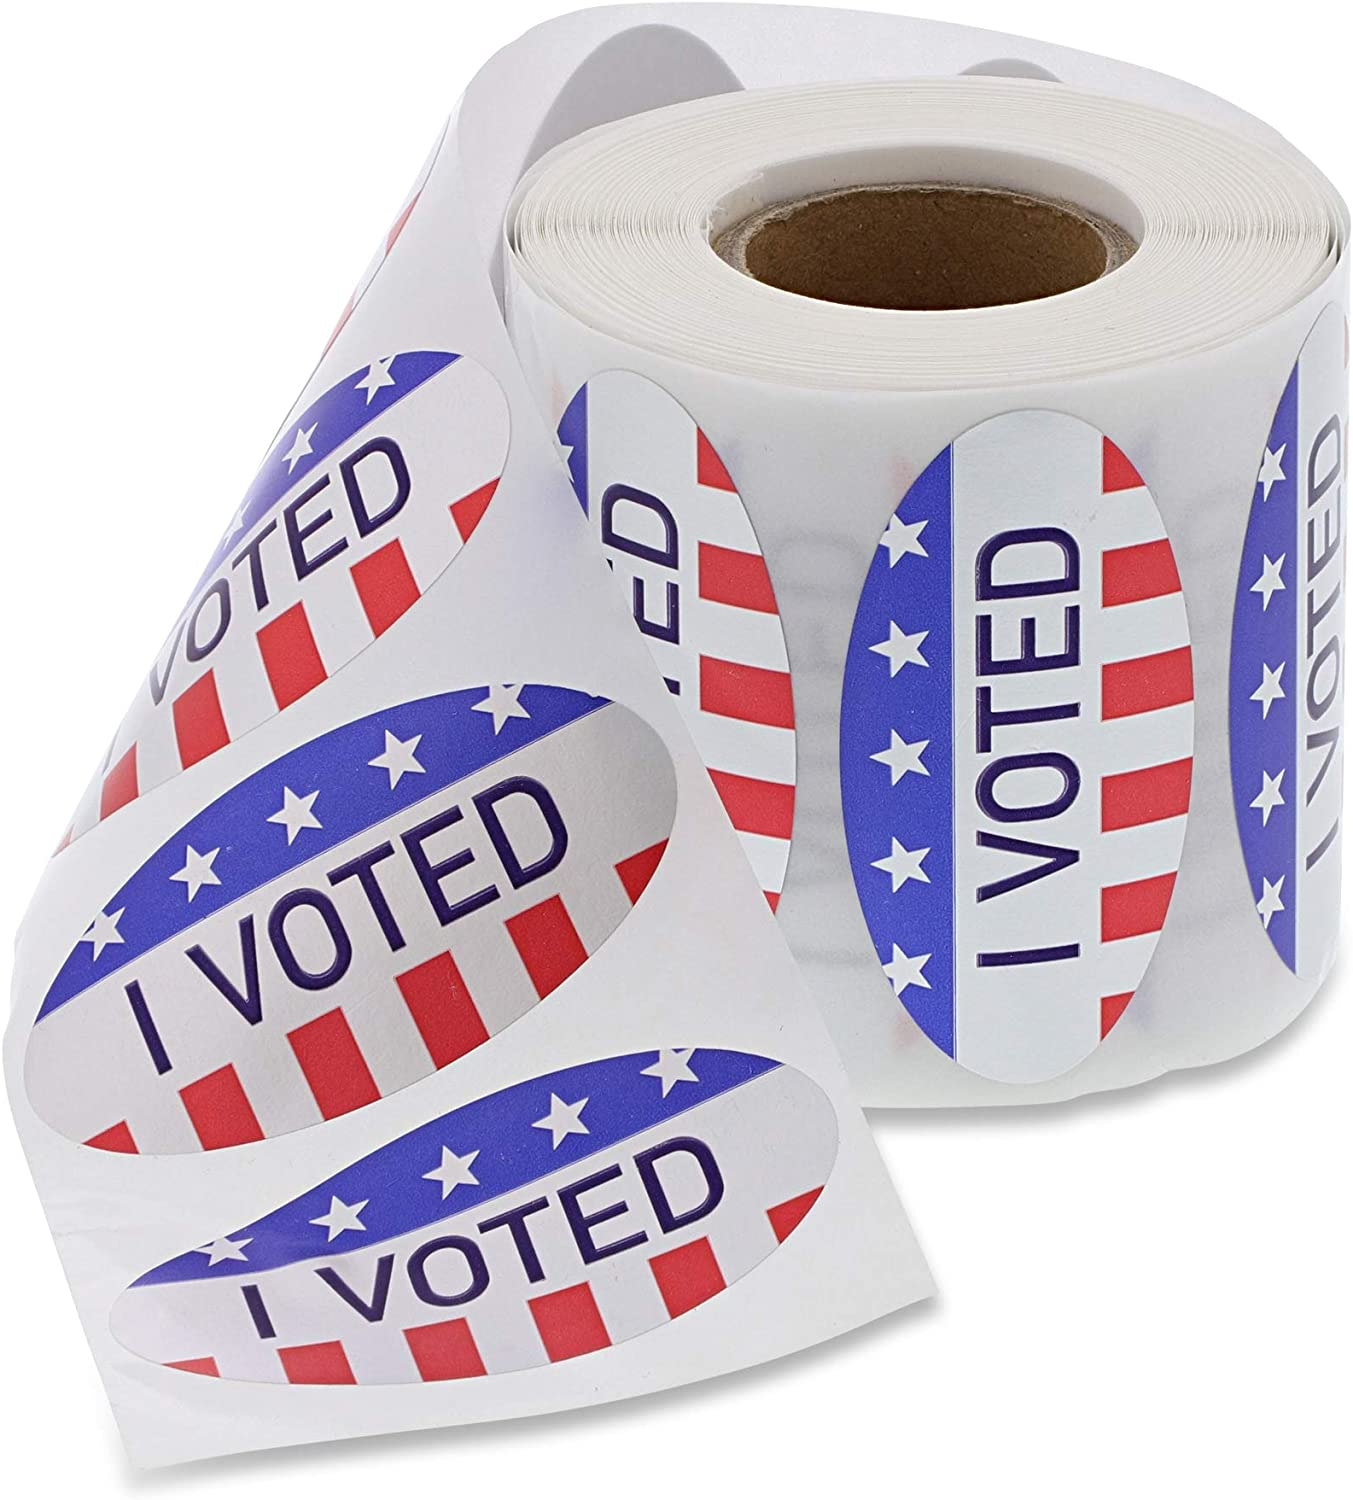 USA Flag Design 500 Count Juvale Foil Voting Stickers 2 x 1 Inches I Voted